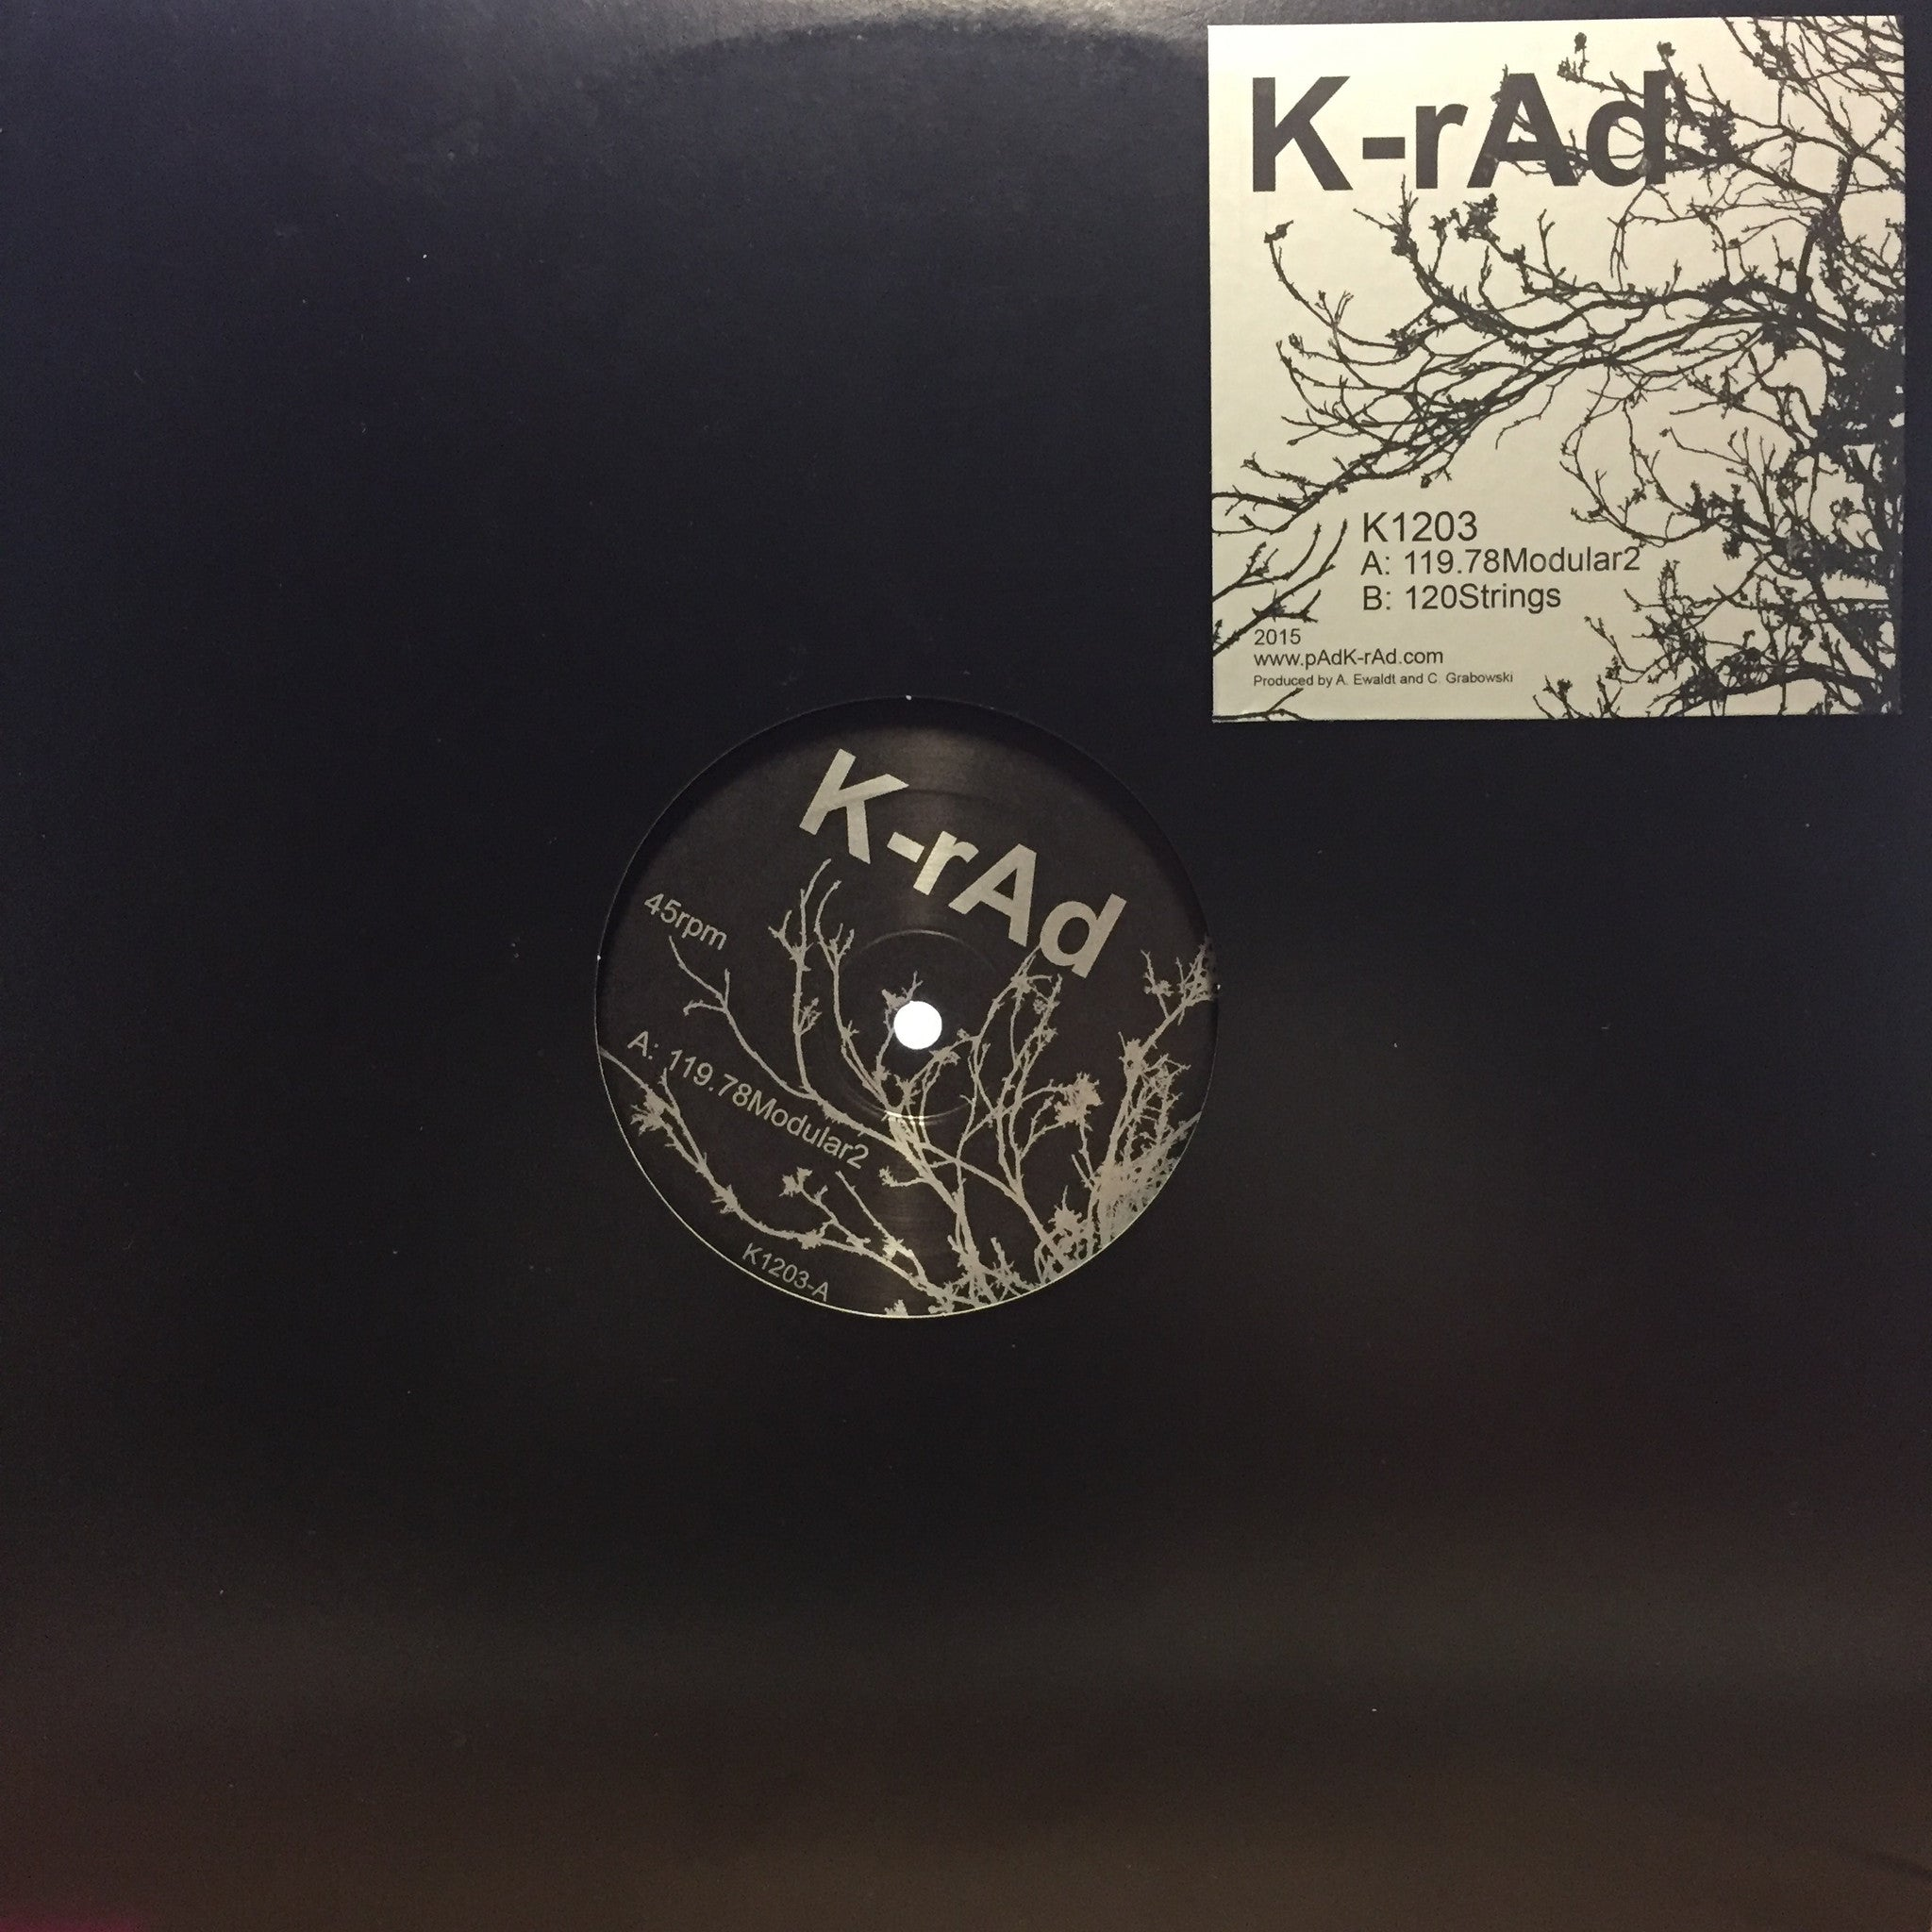 "K-rAd - 119.78Modular2 / 120Strings - New 2015 Vinyl 12"" Single USA - Chicago House/Techno"